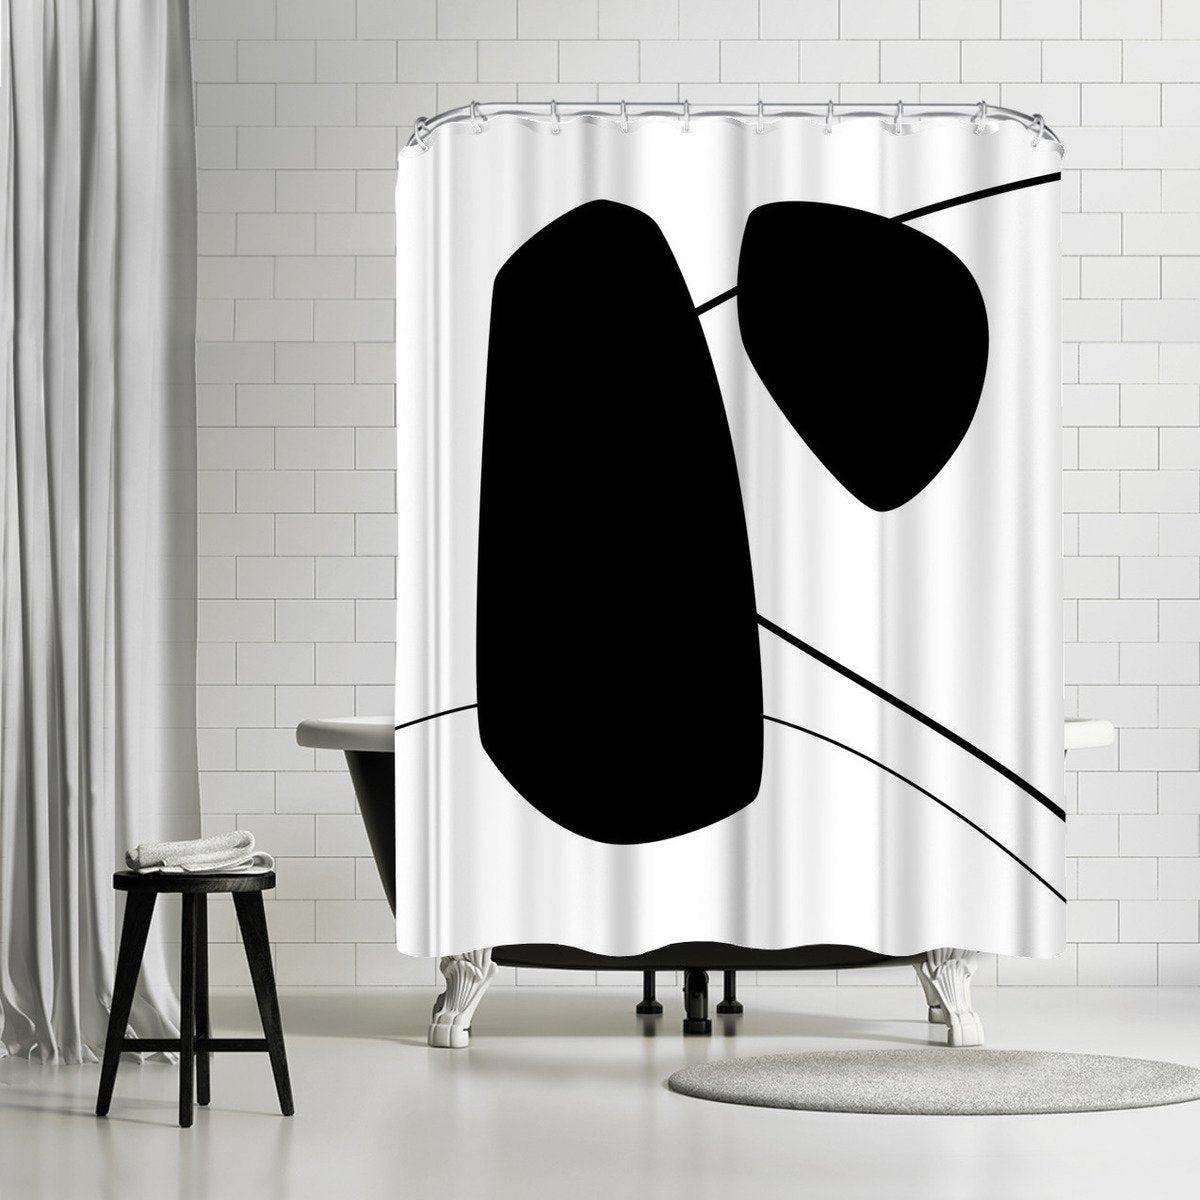 Bold by Explicit Design Shower Curtain - Shower Curtain - Americanflat